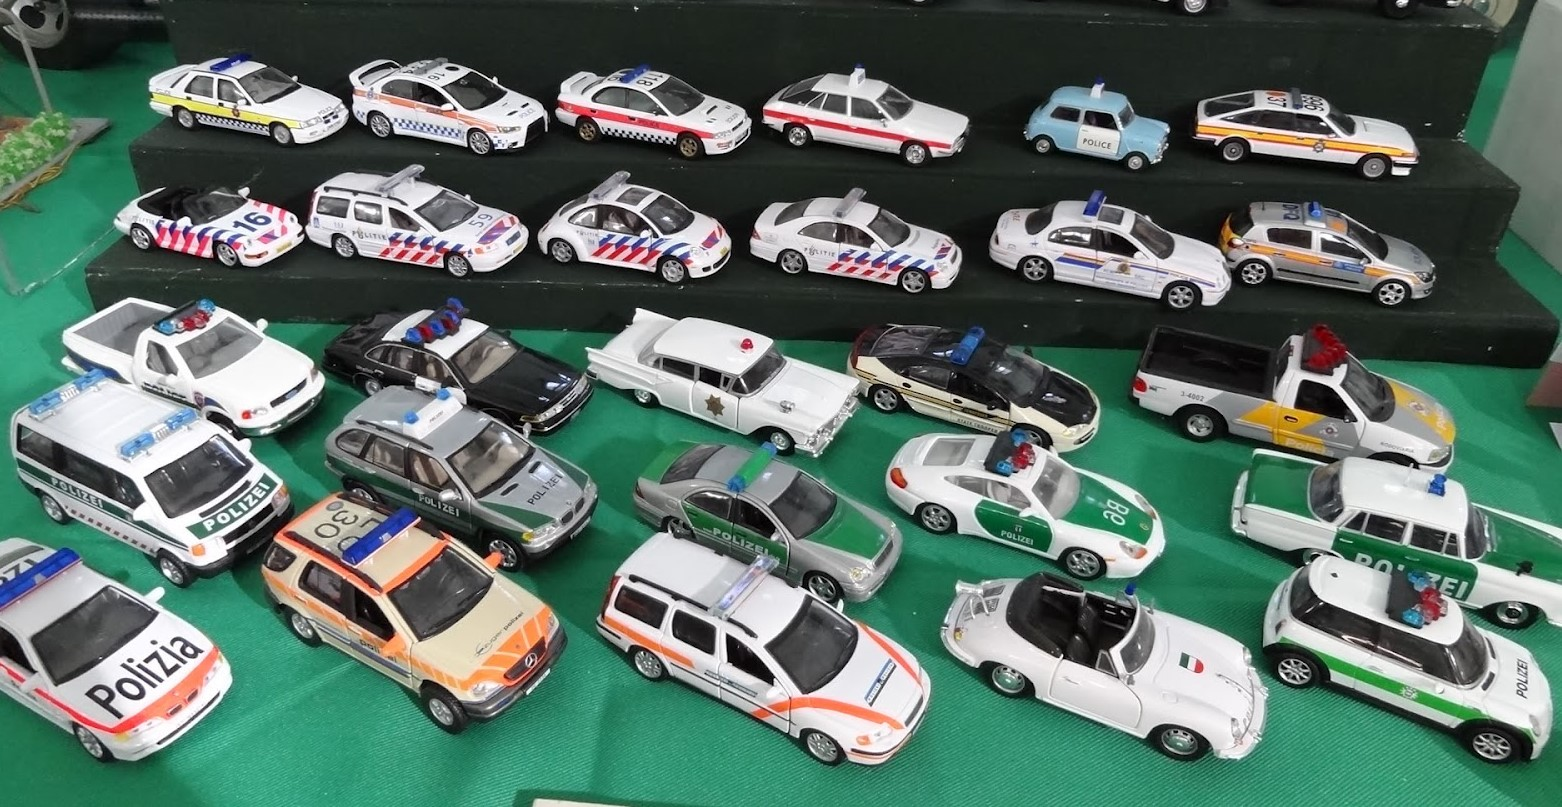 February 1, 2017-Scale-Models-Police-cars.jpg